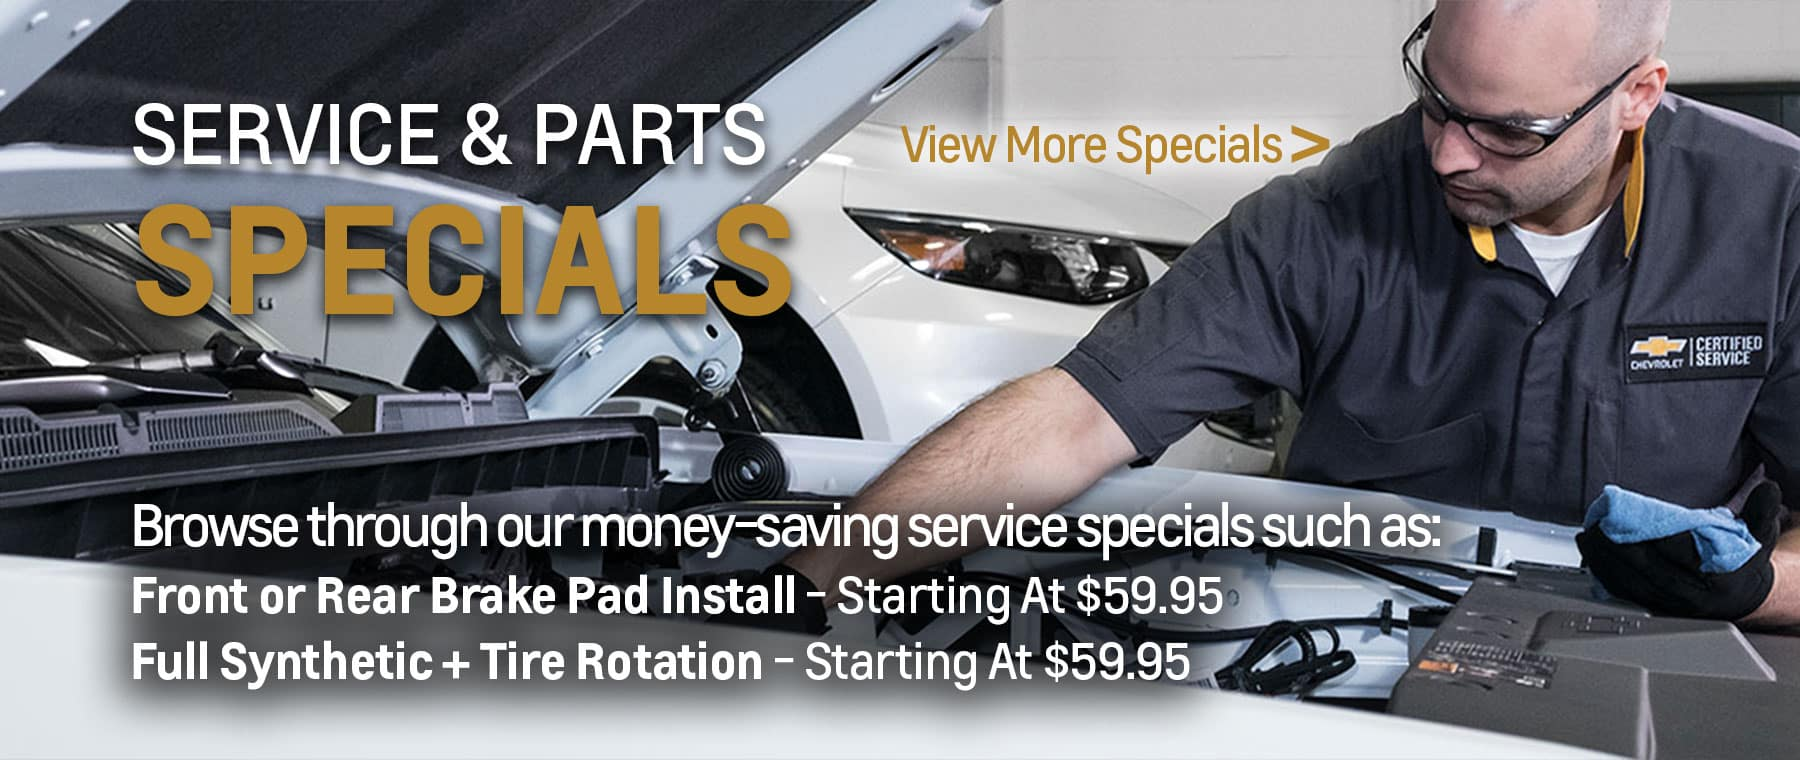 chevy-specials-hp-banner